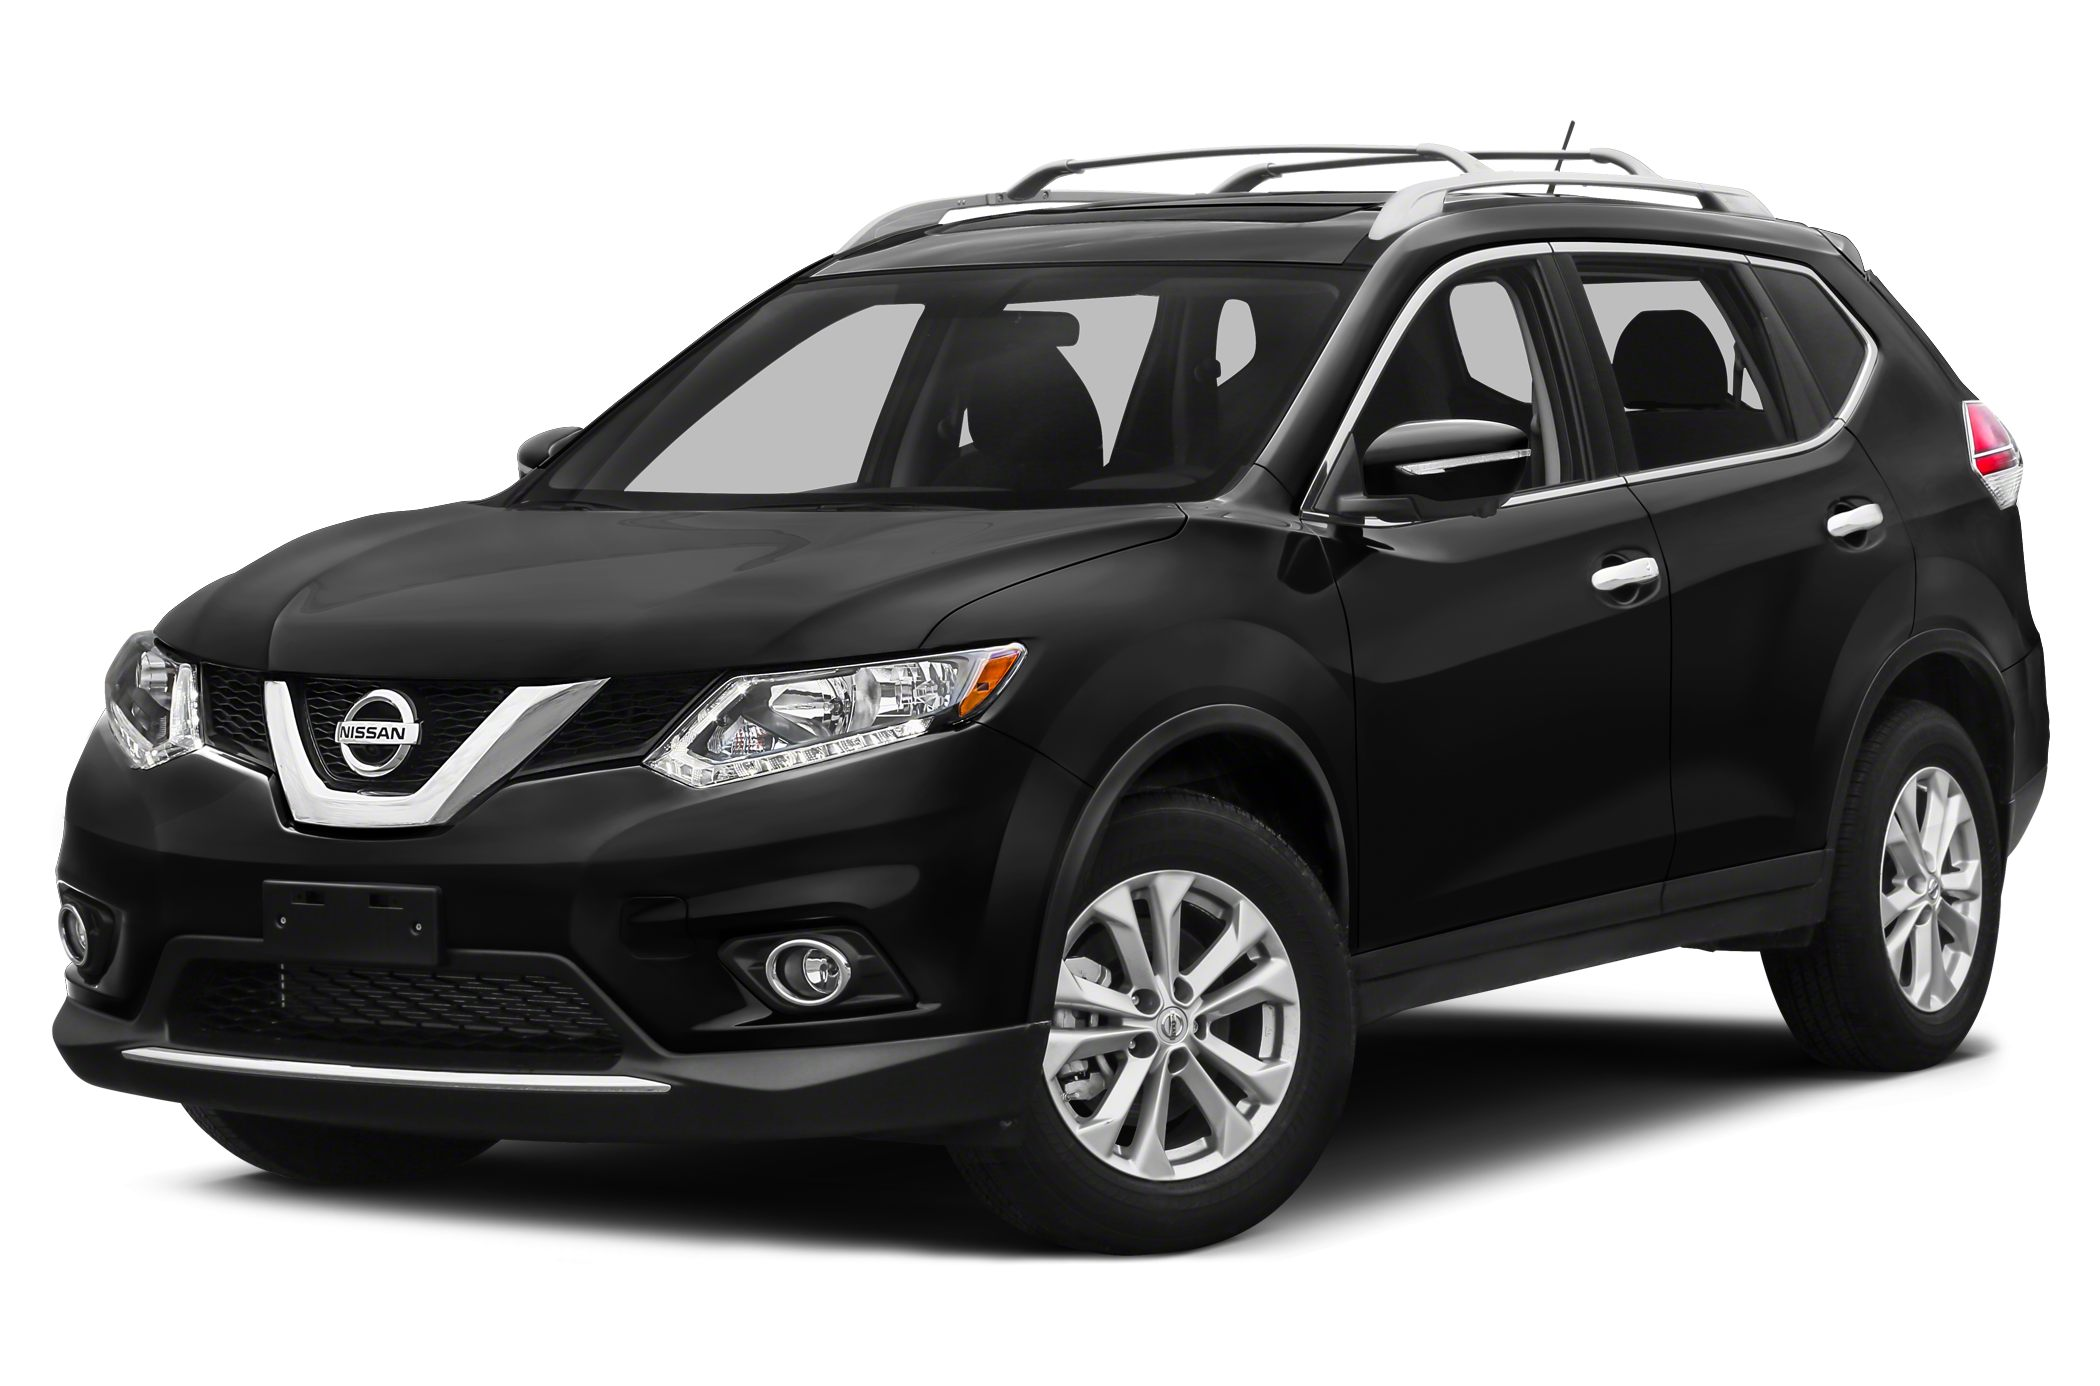 2014 Nissan Rogue SL SUV for sale in Hawthorne for $30,710 with 13 miles